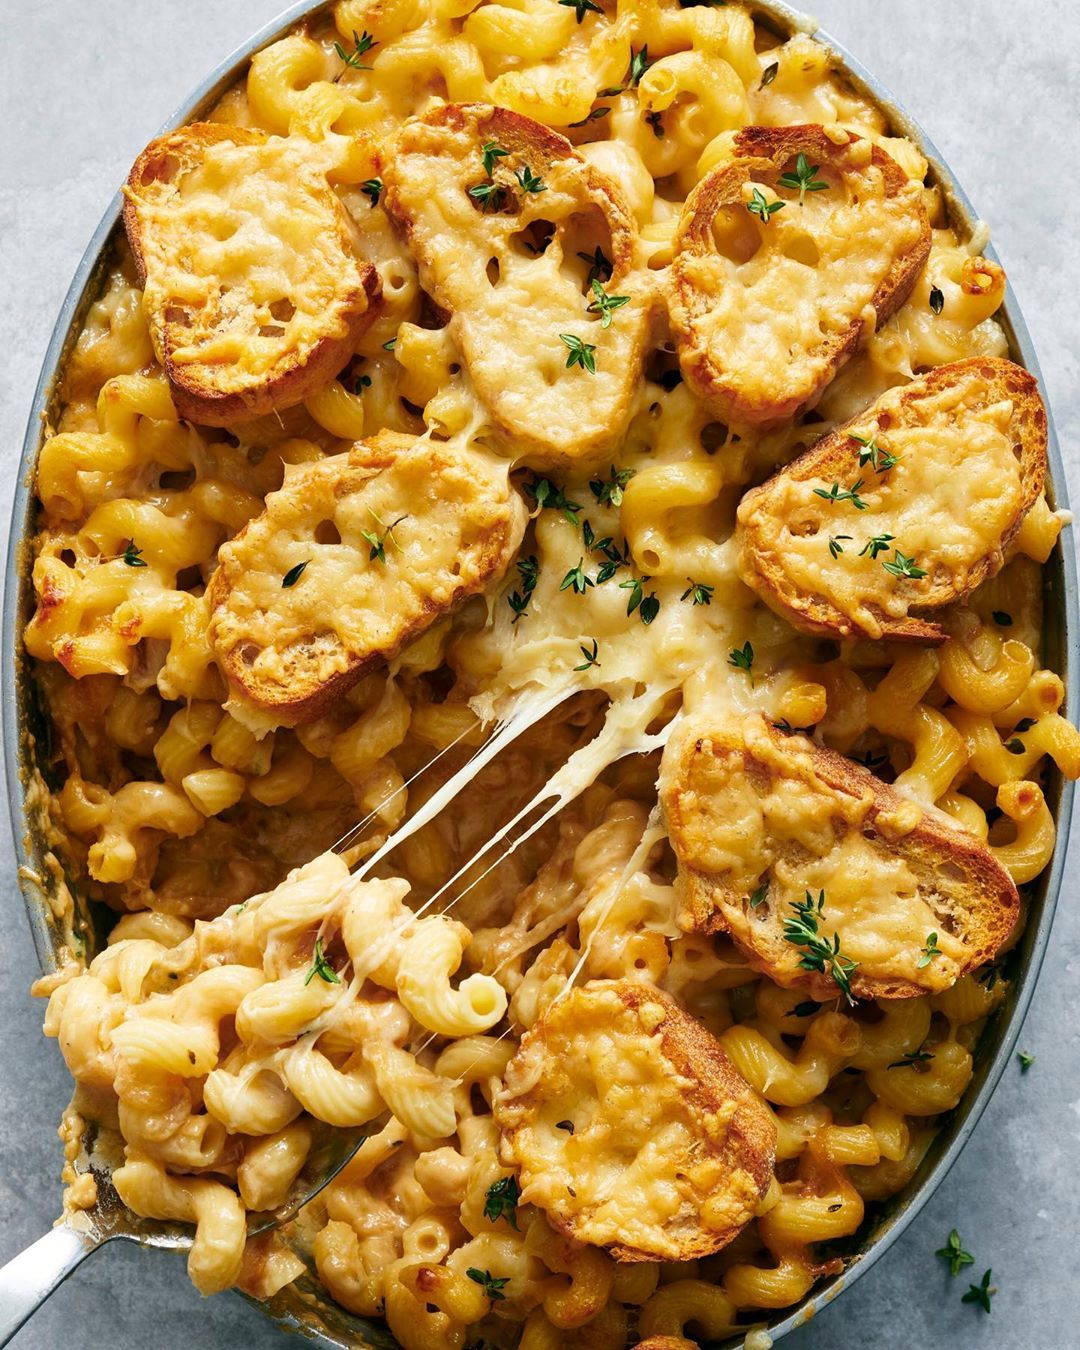 Nyt Cooking On Instagram French Onion Macaroni And Cheese Is Itsalislagle S Newest And Yes It S Topped With Little Melty Gruyere Toasts Recipe Link I